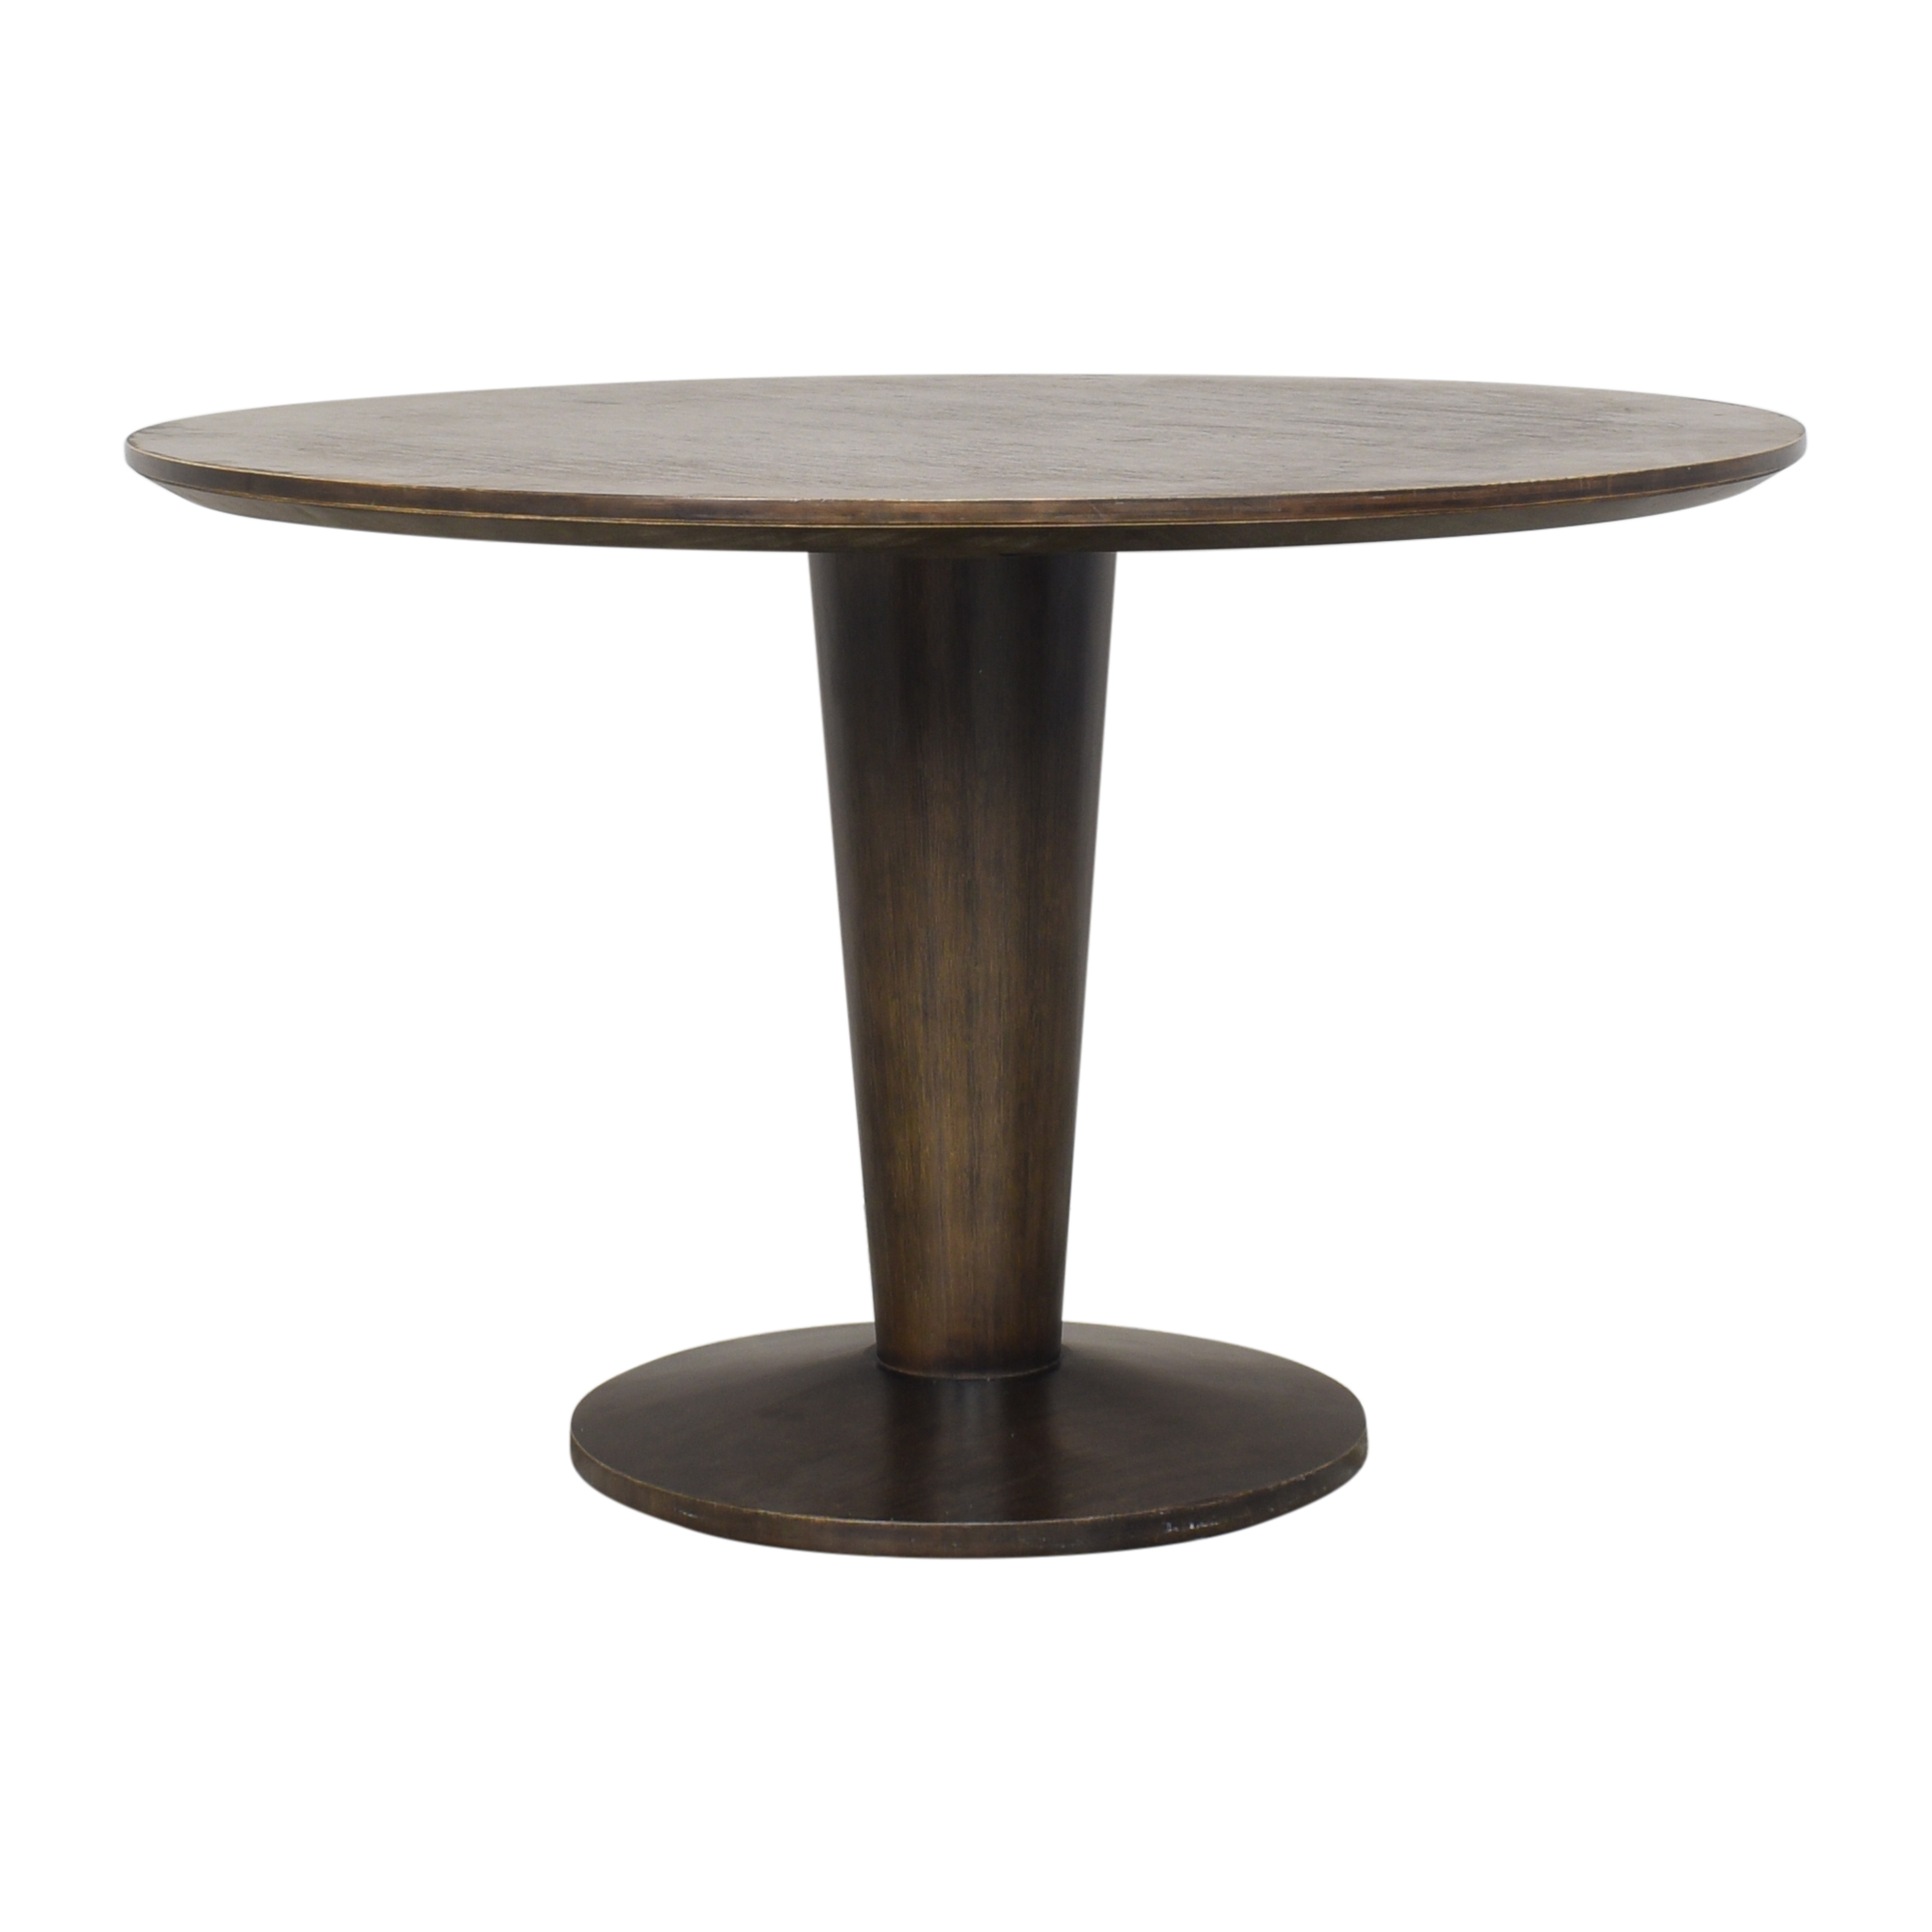 Room & Board Room & Board Maria Yee Round Dining Table price